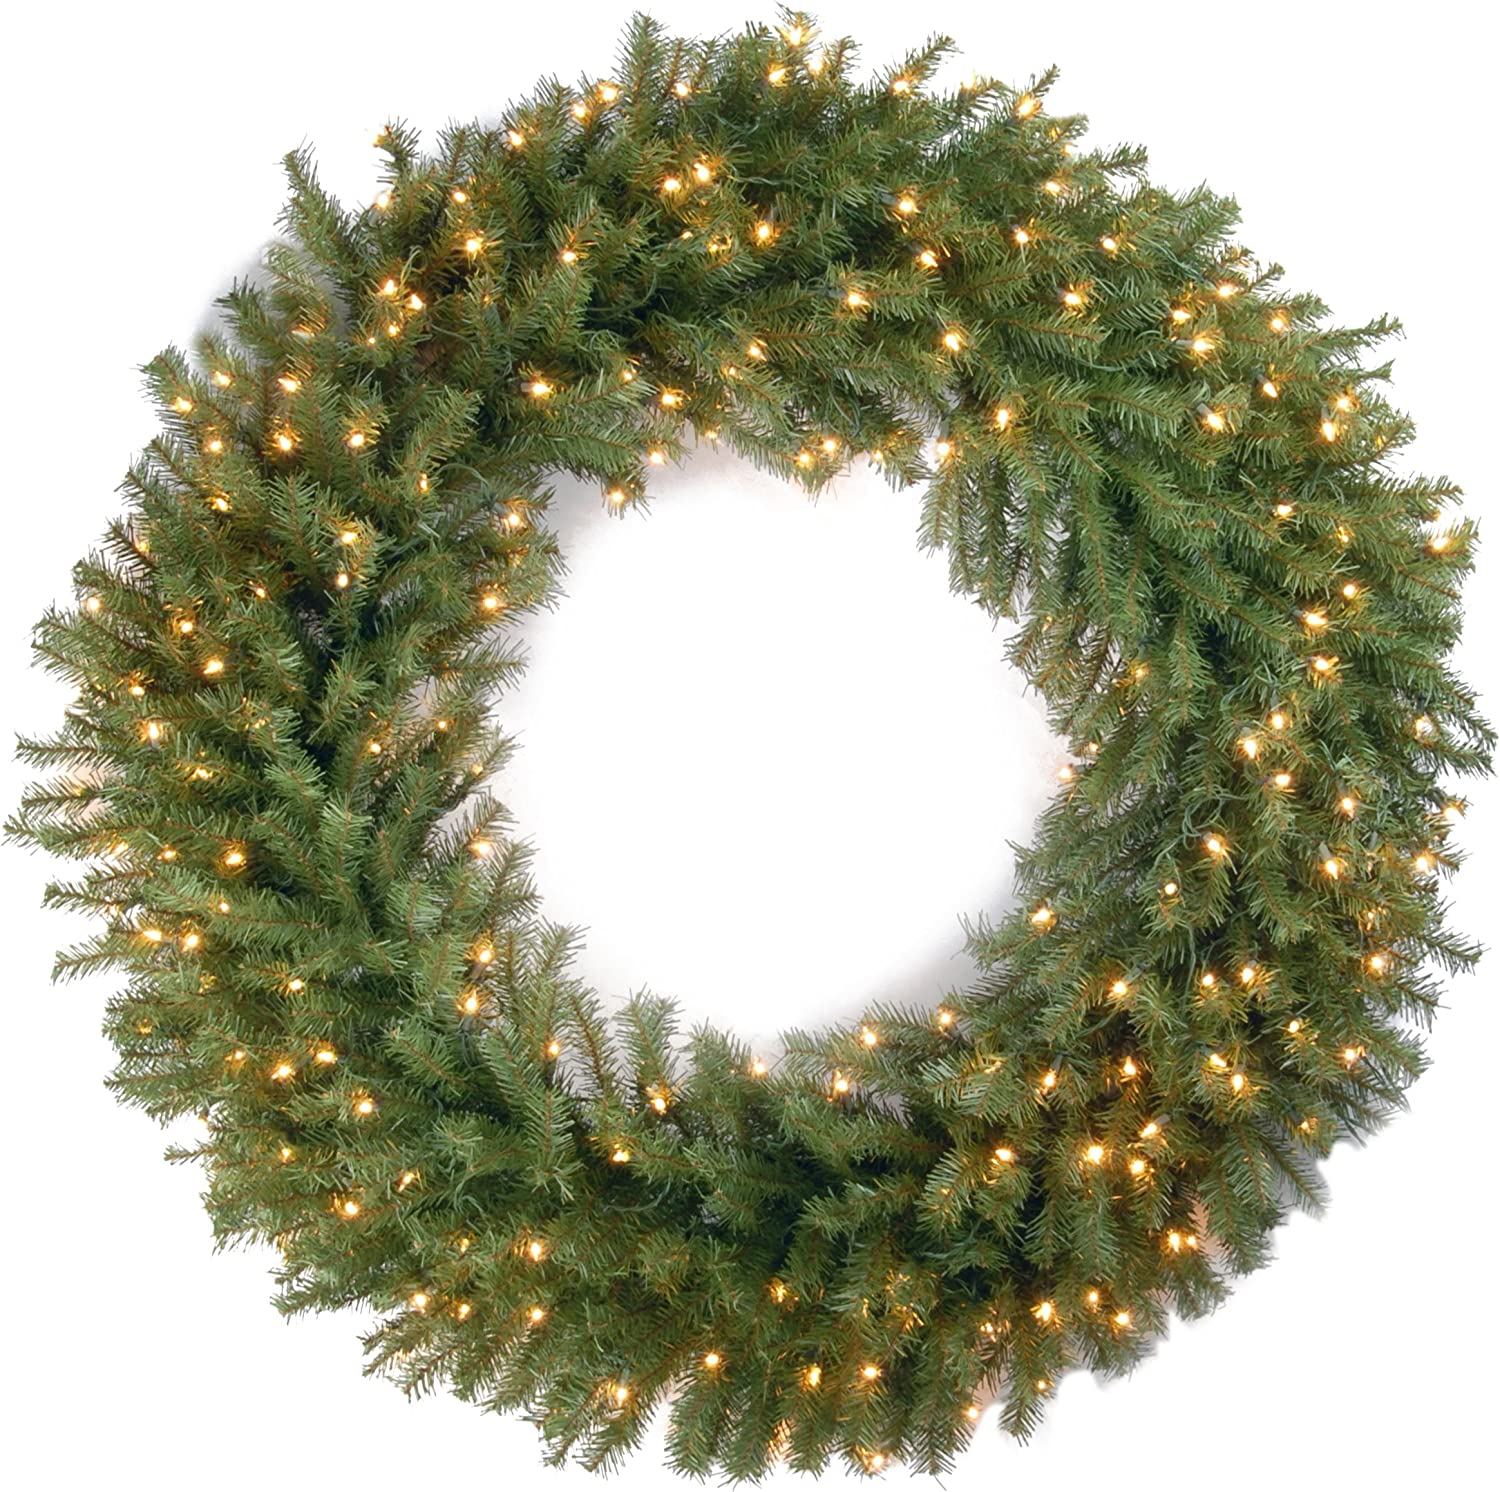 Over item handling ☆ National Tree Company Pre-lit Inclu Wreath Gifts Artificial Christmas